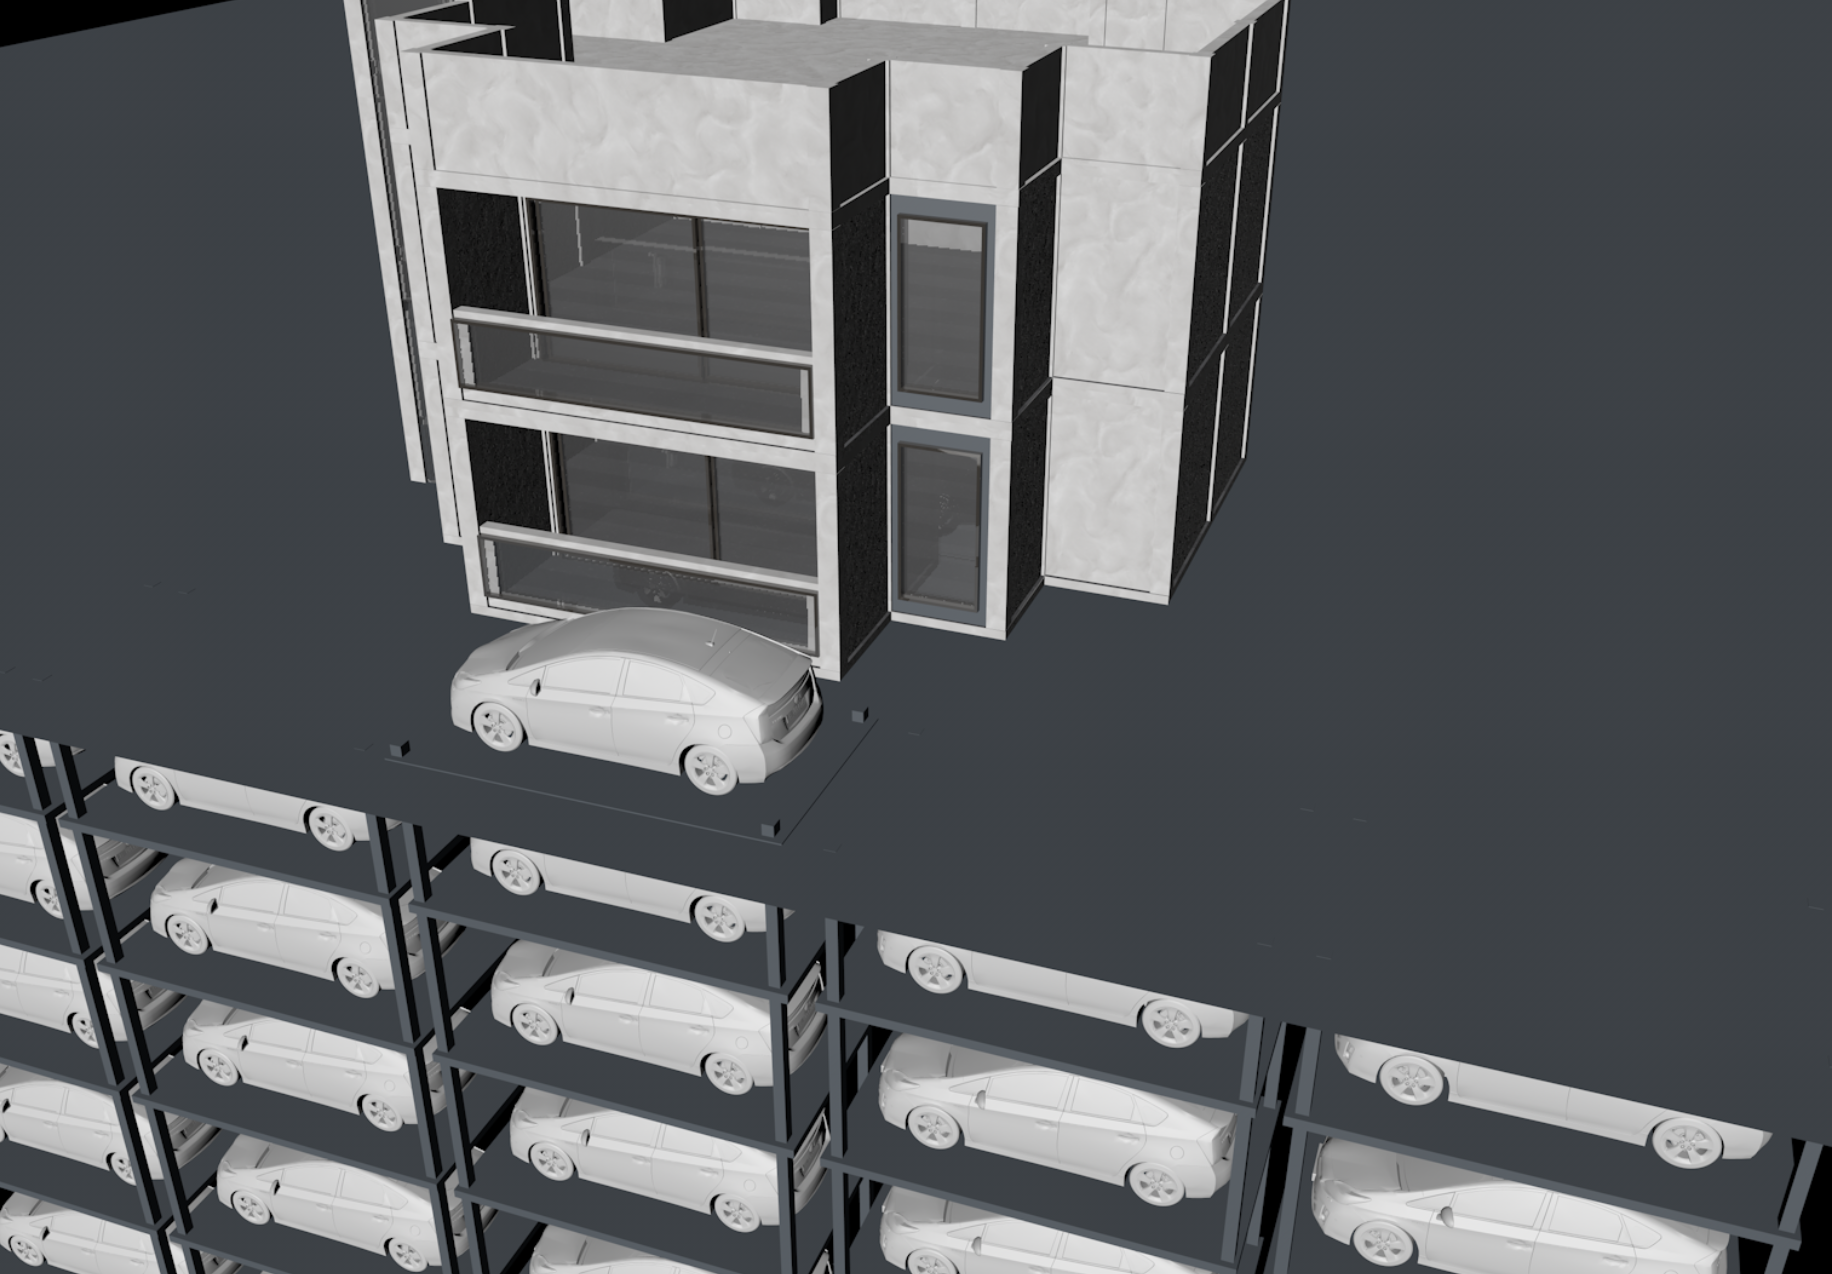 """- Moving """"drawers"""" for car storage underneath building eliminates hassle in looking for parking space and reduces CO2 emissions in enclosed area.Vender machine-like nature makes car available at any entrance of building. Imagine if, after parking, you can enter a giant shopping mall from the East entrance and exit out the West and have your car waiting for you there."""